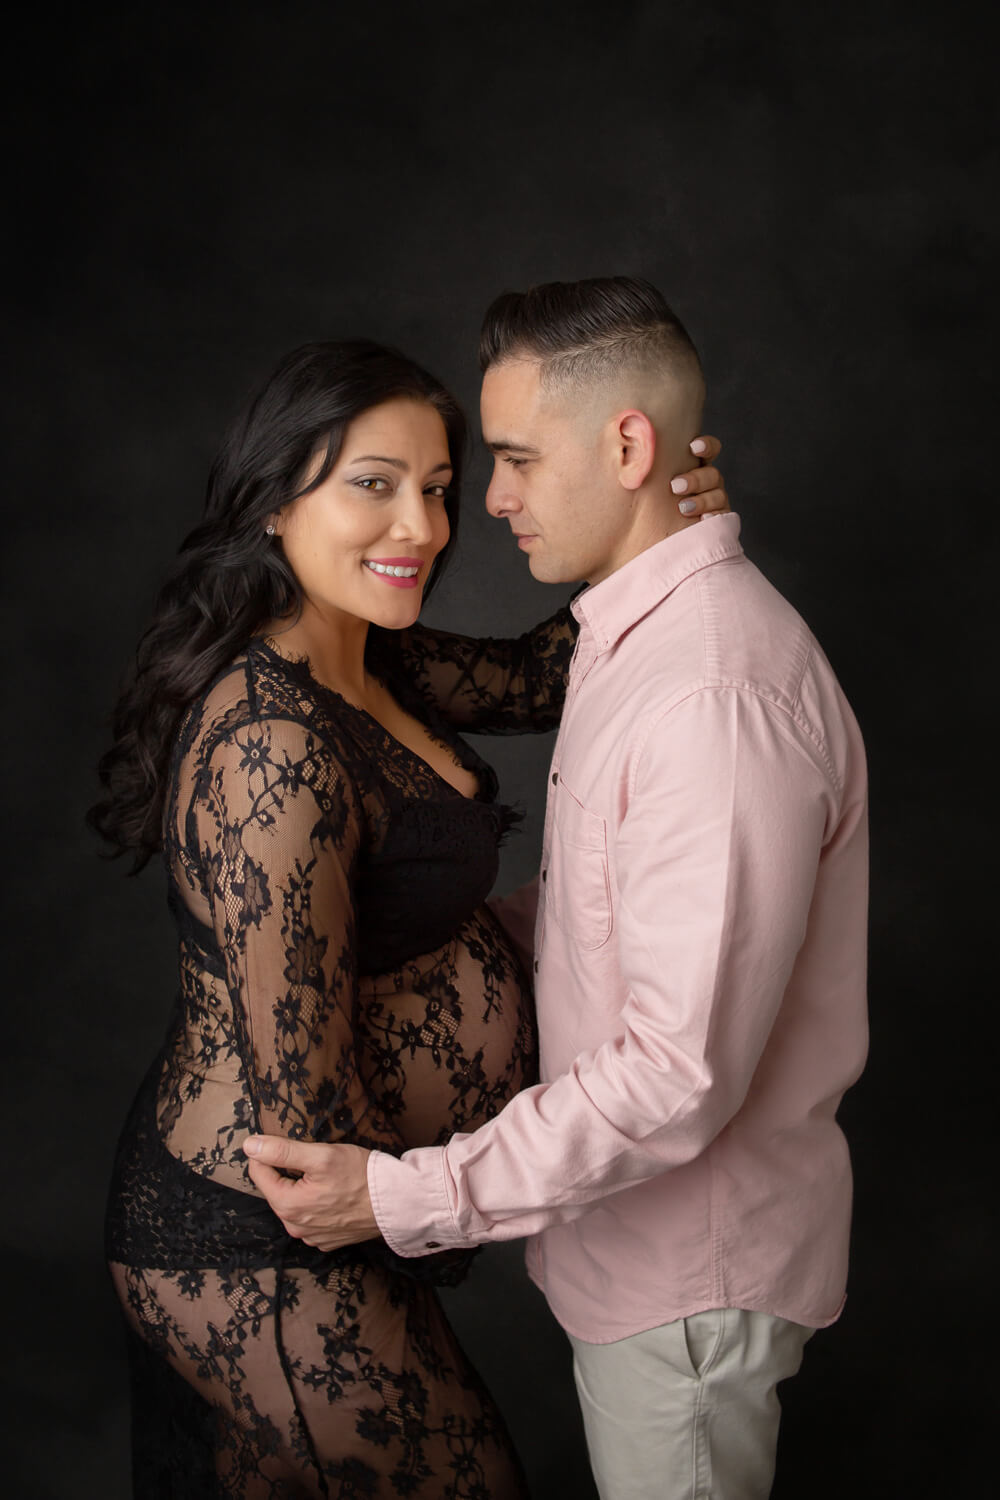 pregnant woman posing for maternity photo in black gown with her man